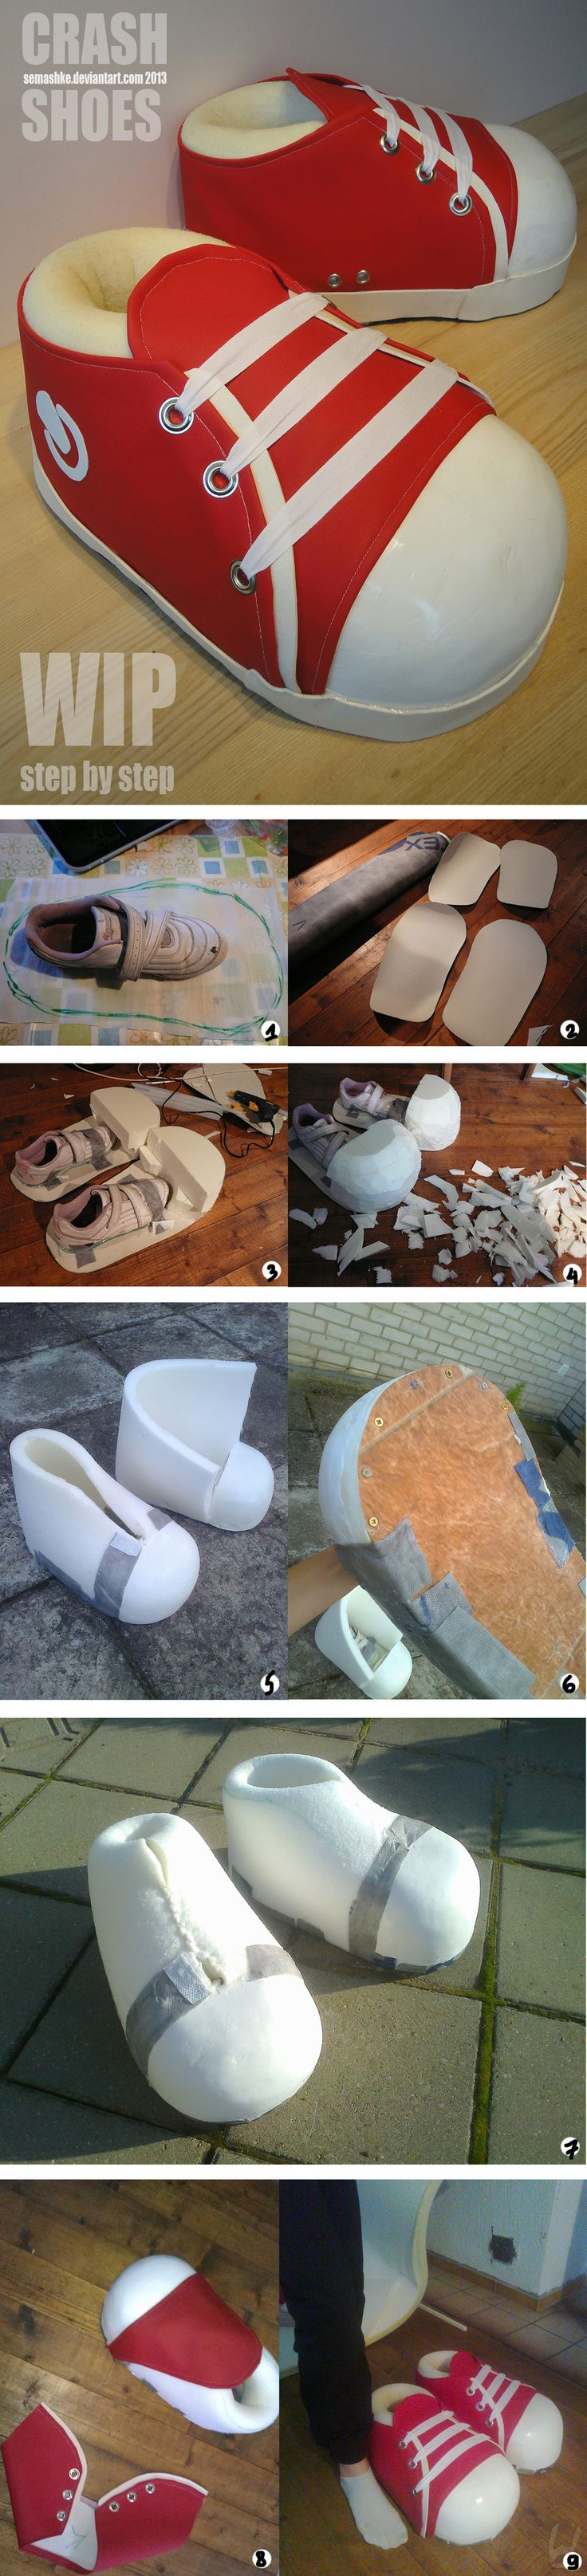 Crash Bandicoot Cosplay Shoes - WIP and HOW TO by Semashke